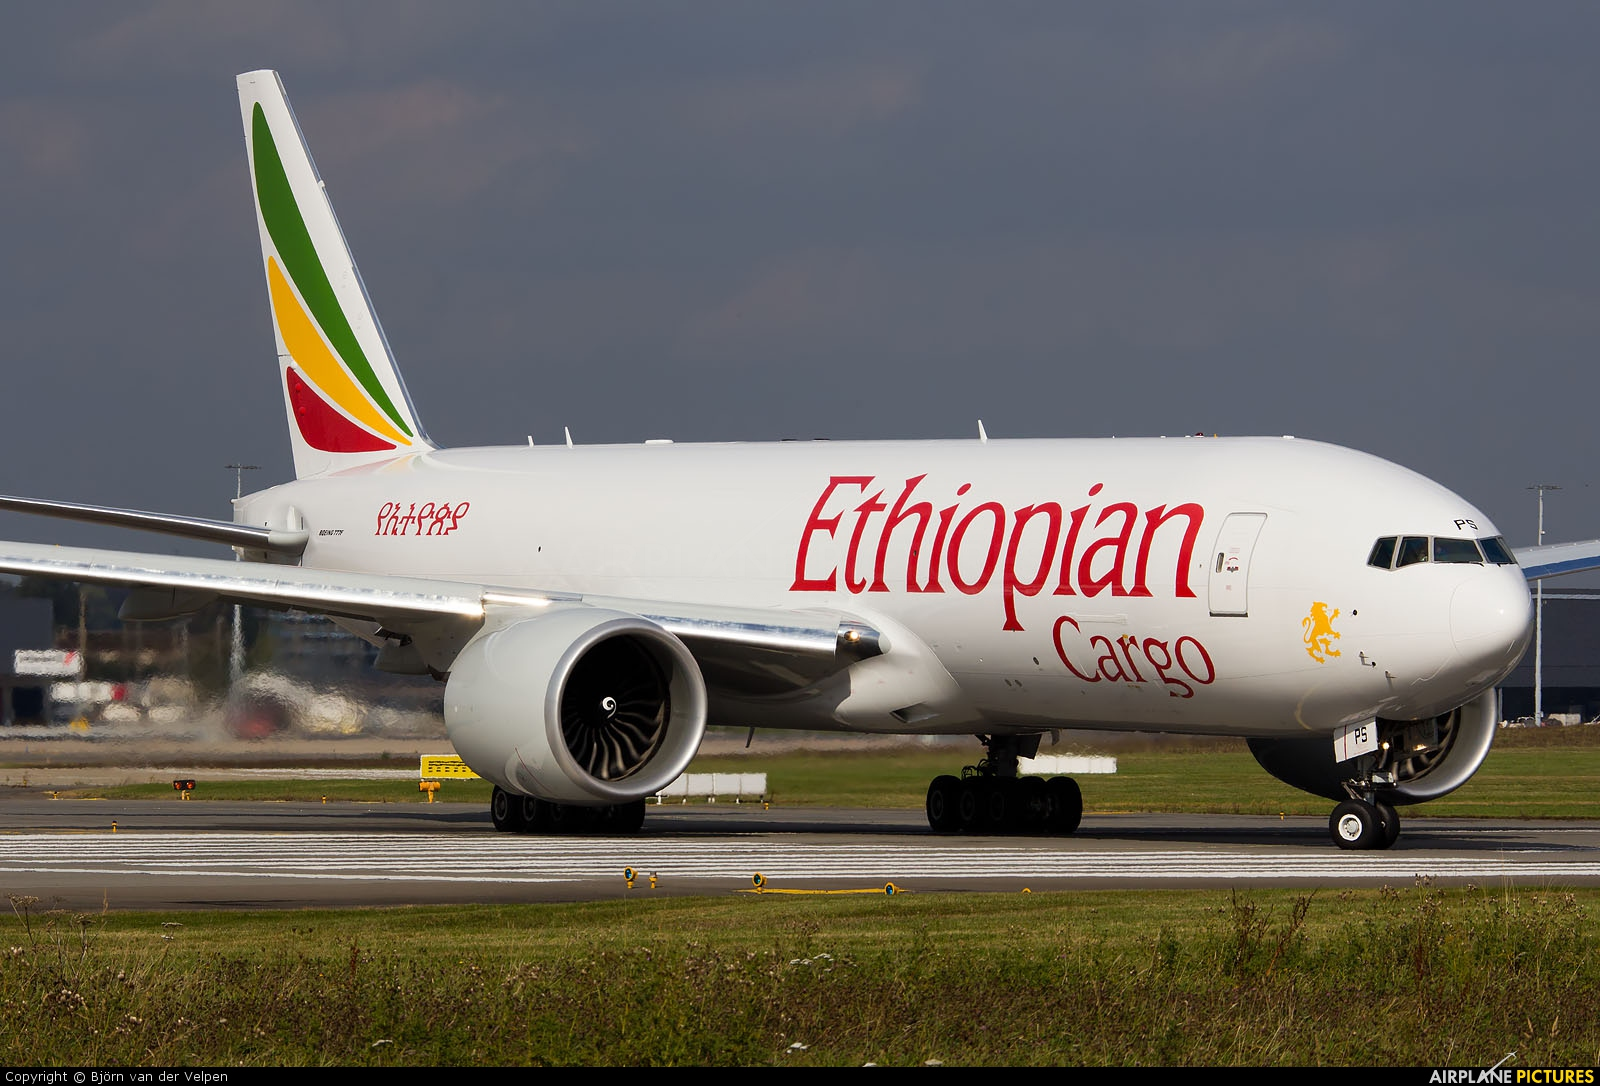 Ethiopian Airlines takes delivery of its 8th Boeing 777